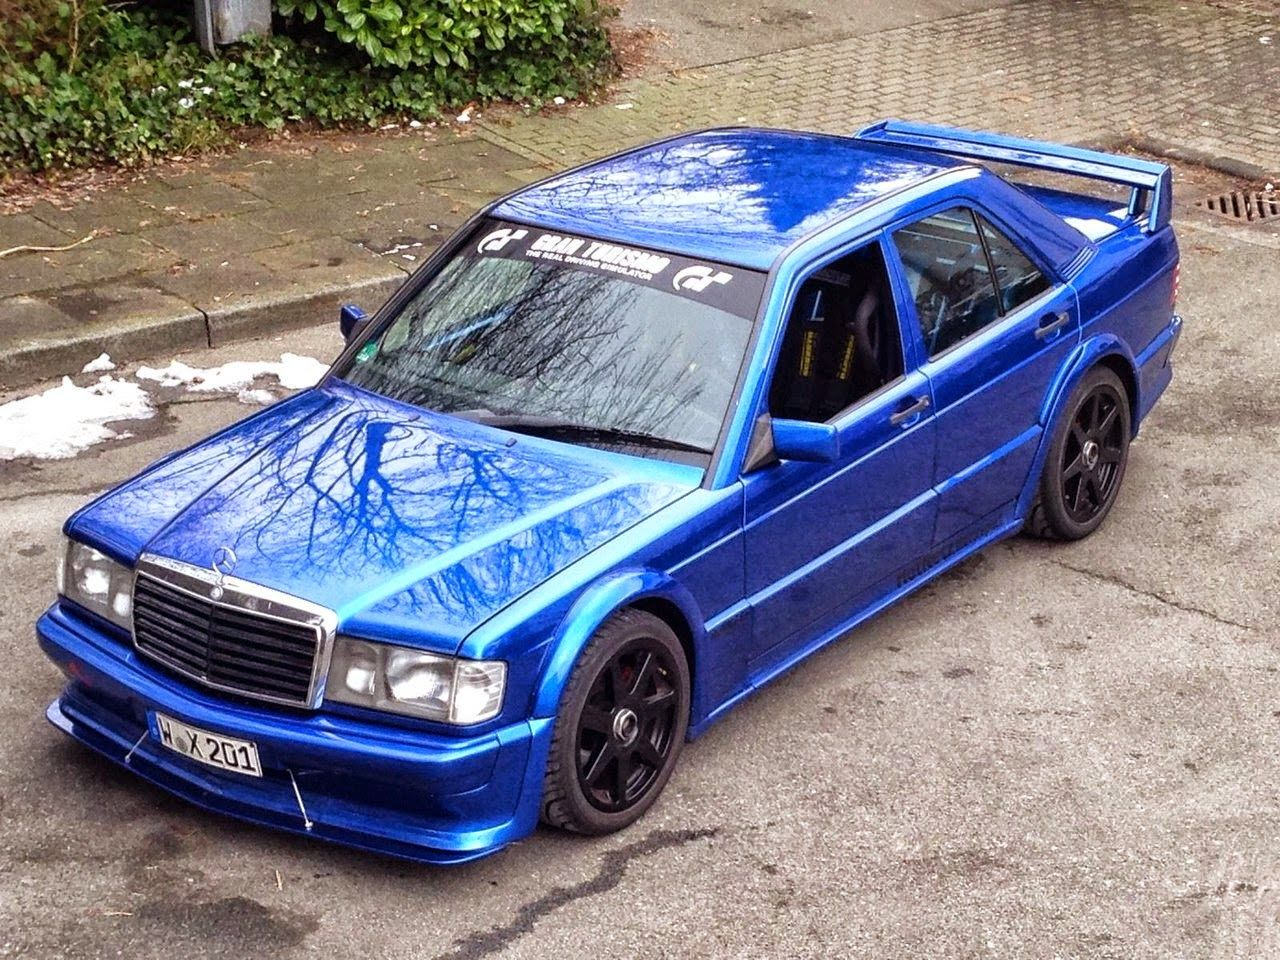 Mercedes w210 tuning 2 tuning cars - Mercedes Benz 190e 2 5 Evolution